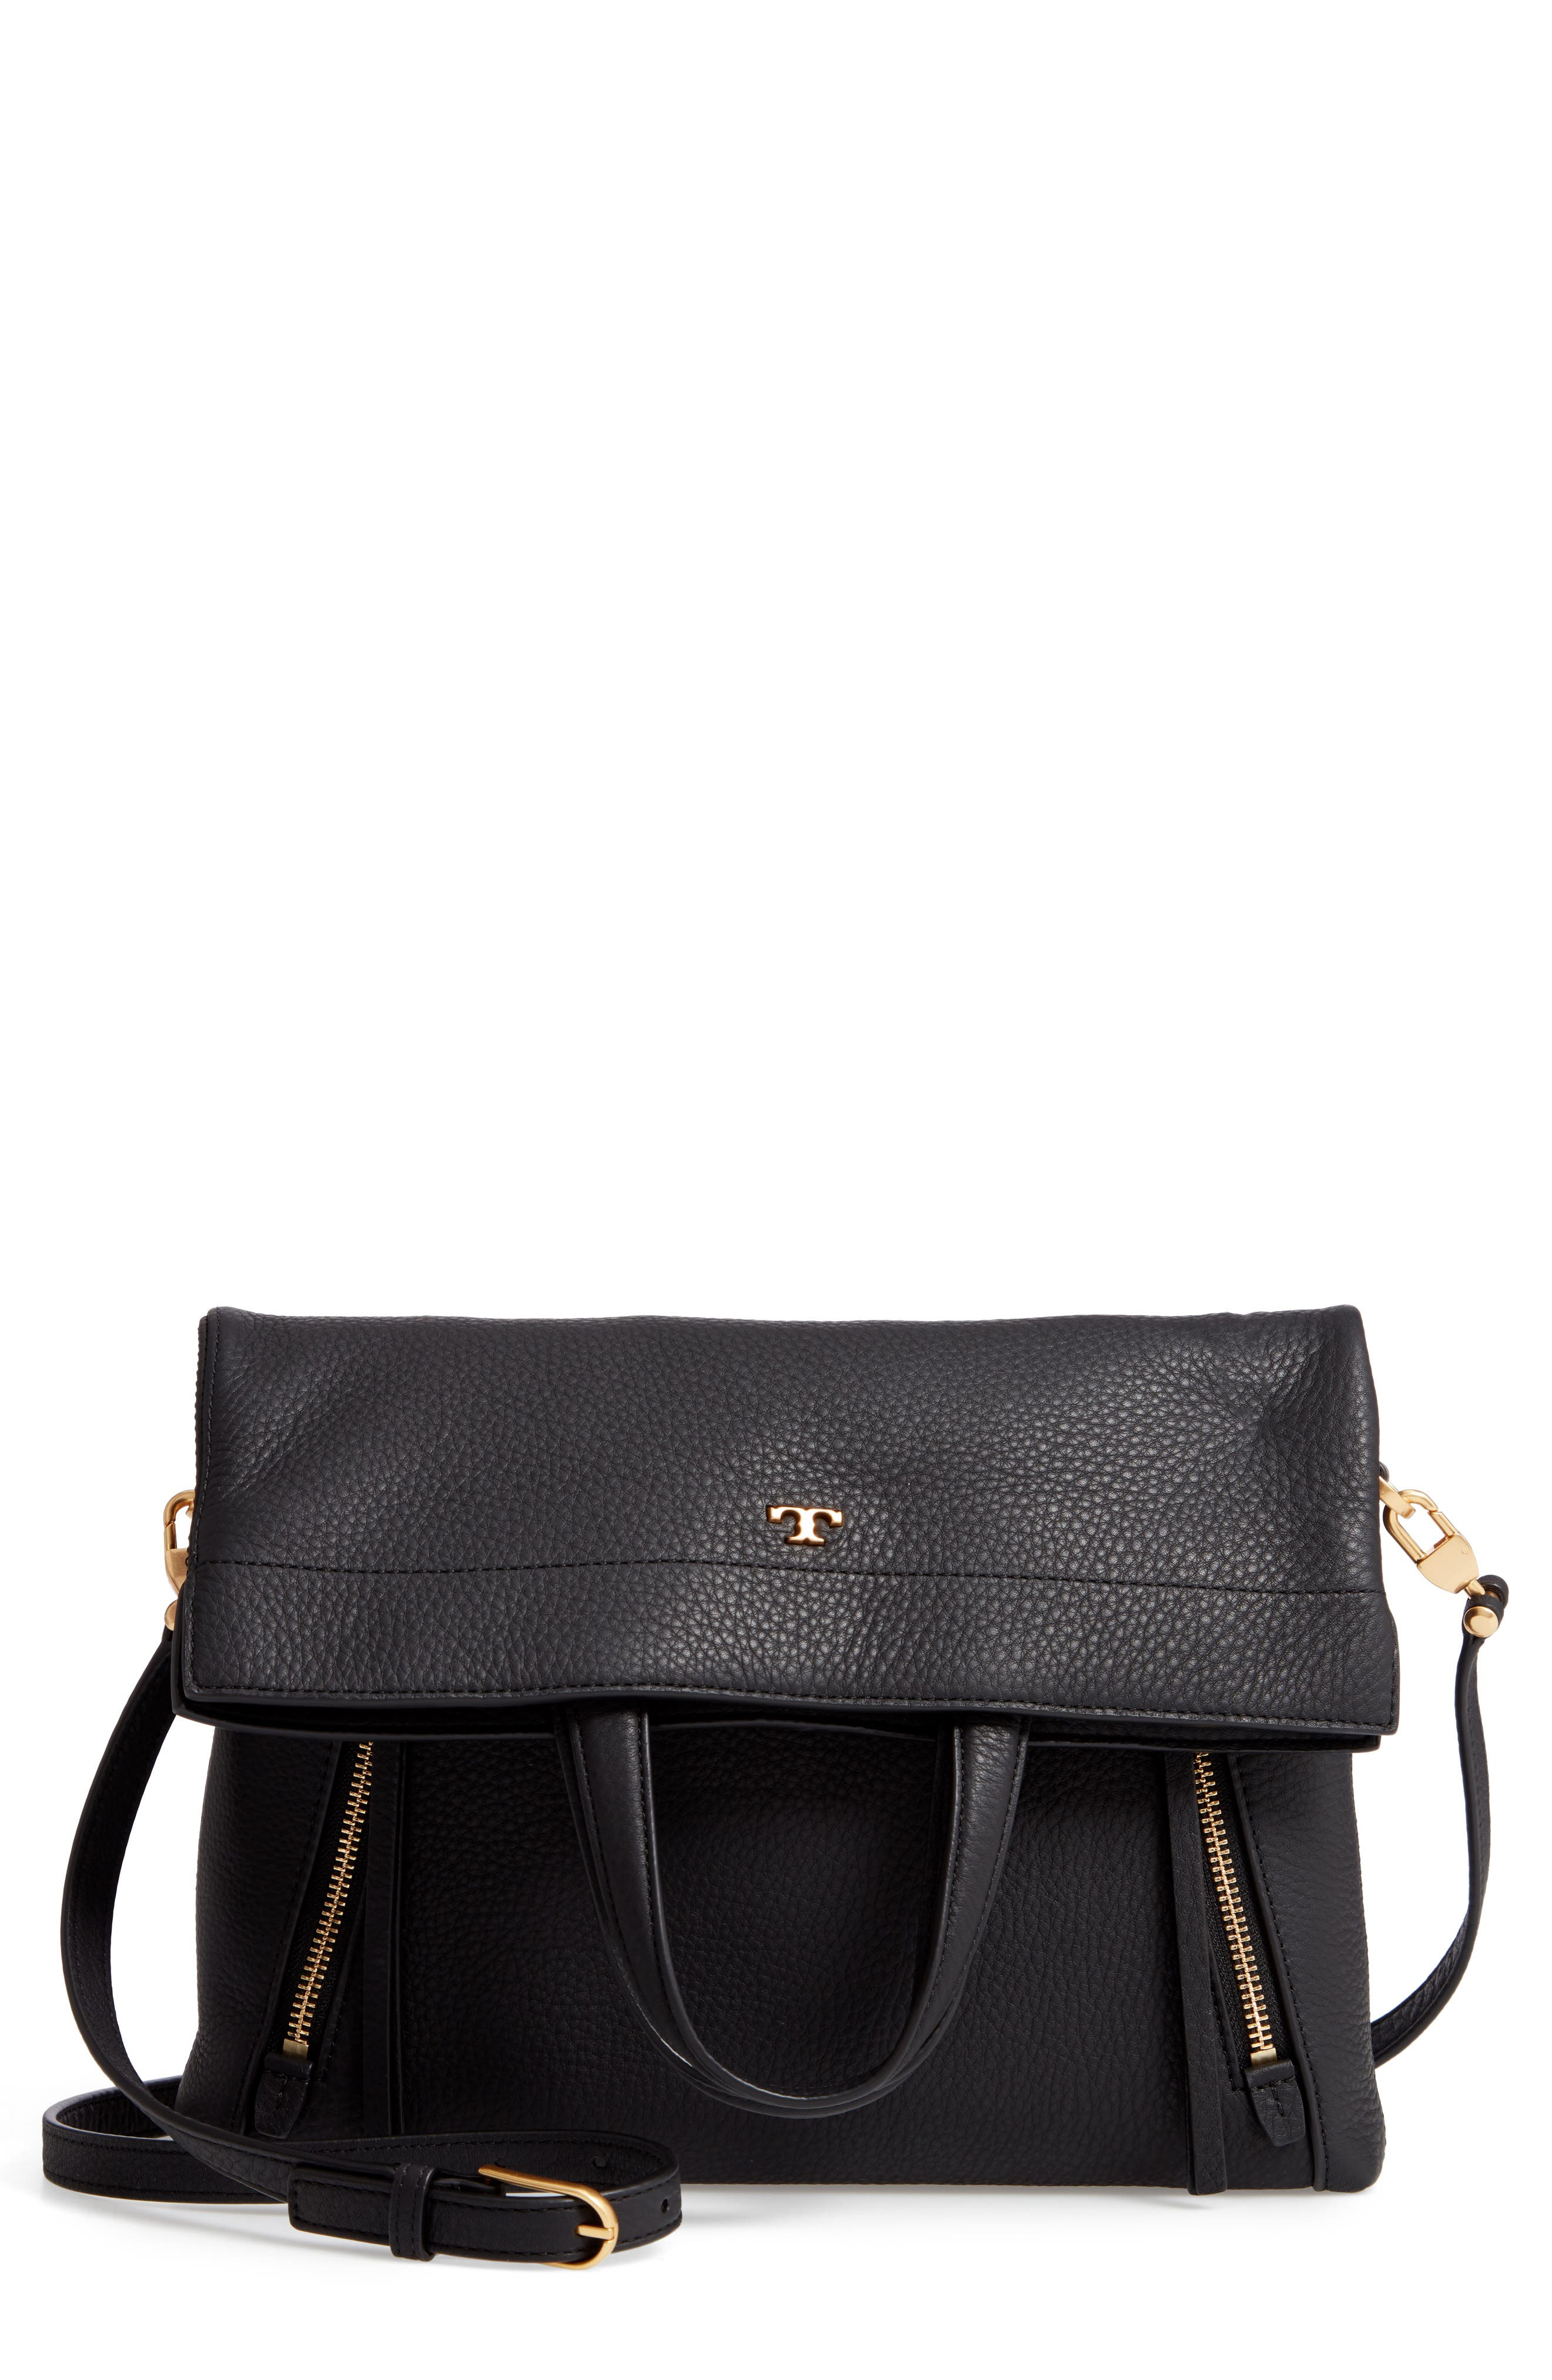 Half Moon Convertible Crossbody Bag,                             Main thumbnail 1, color,                             001